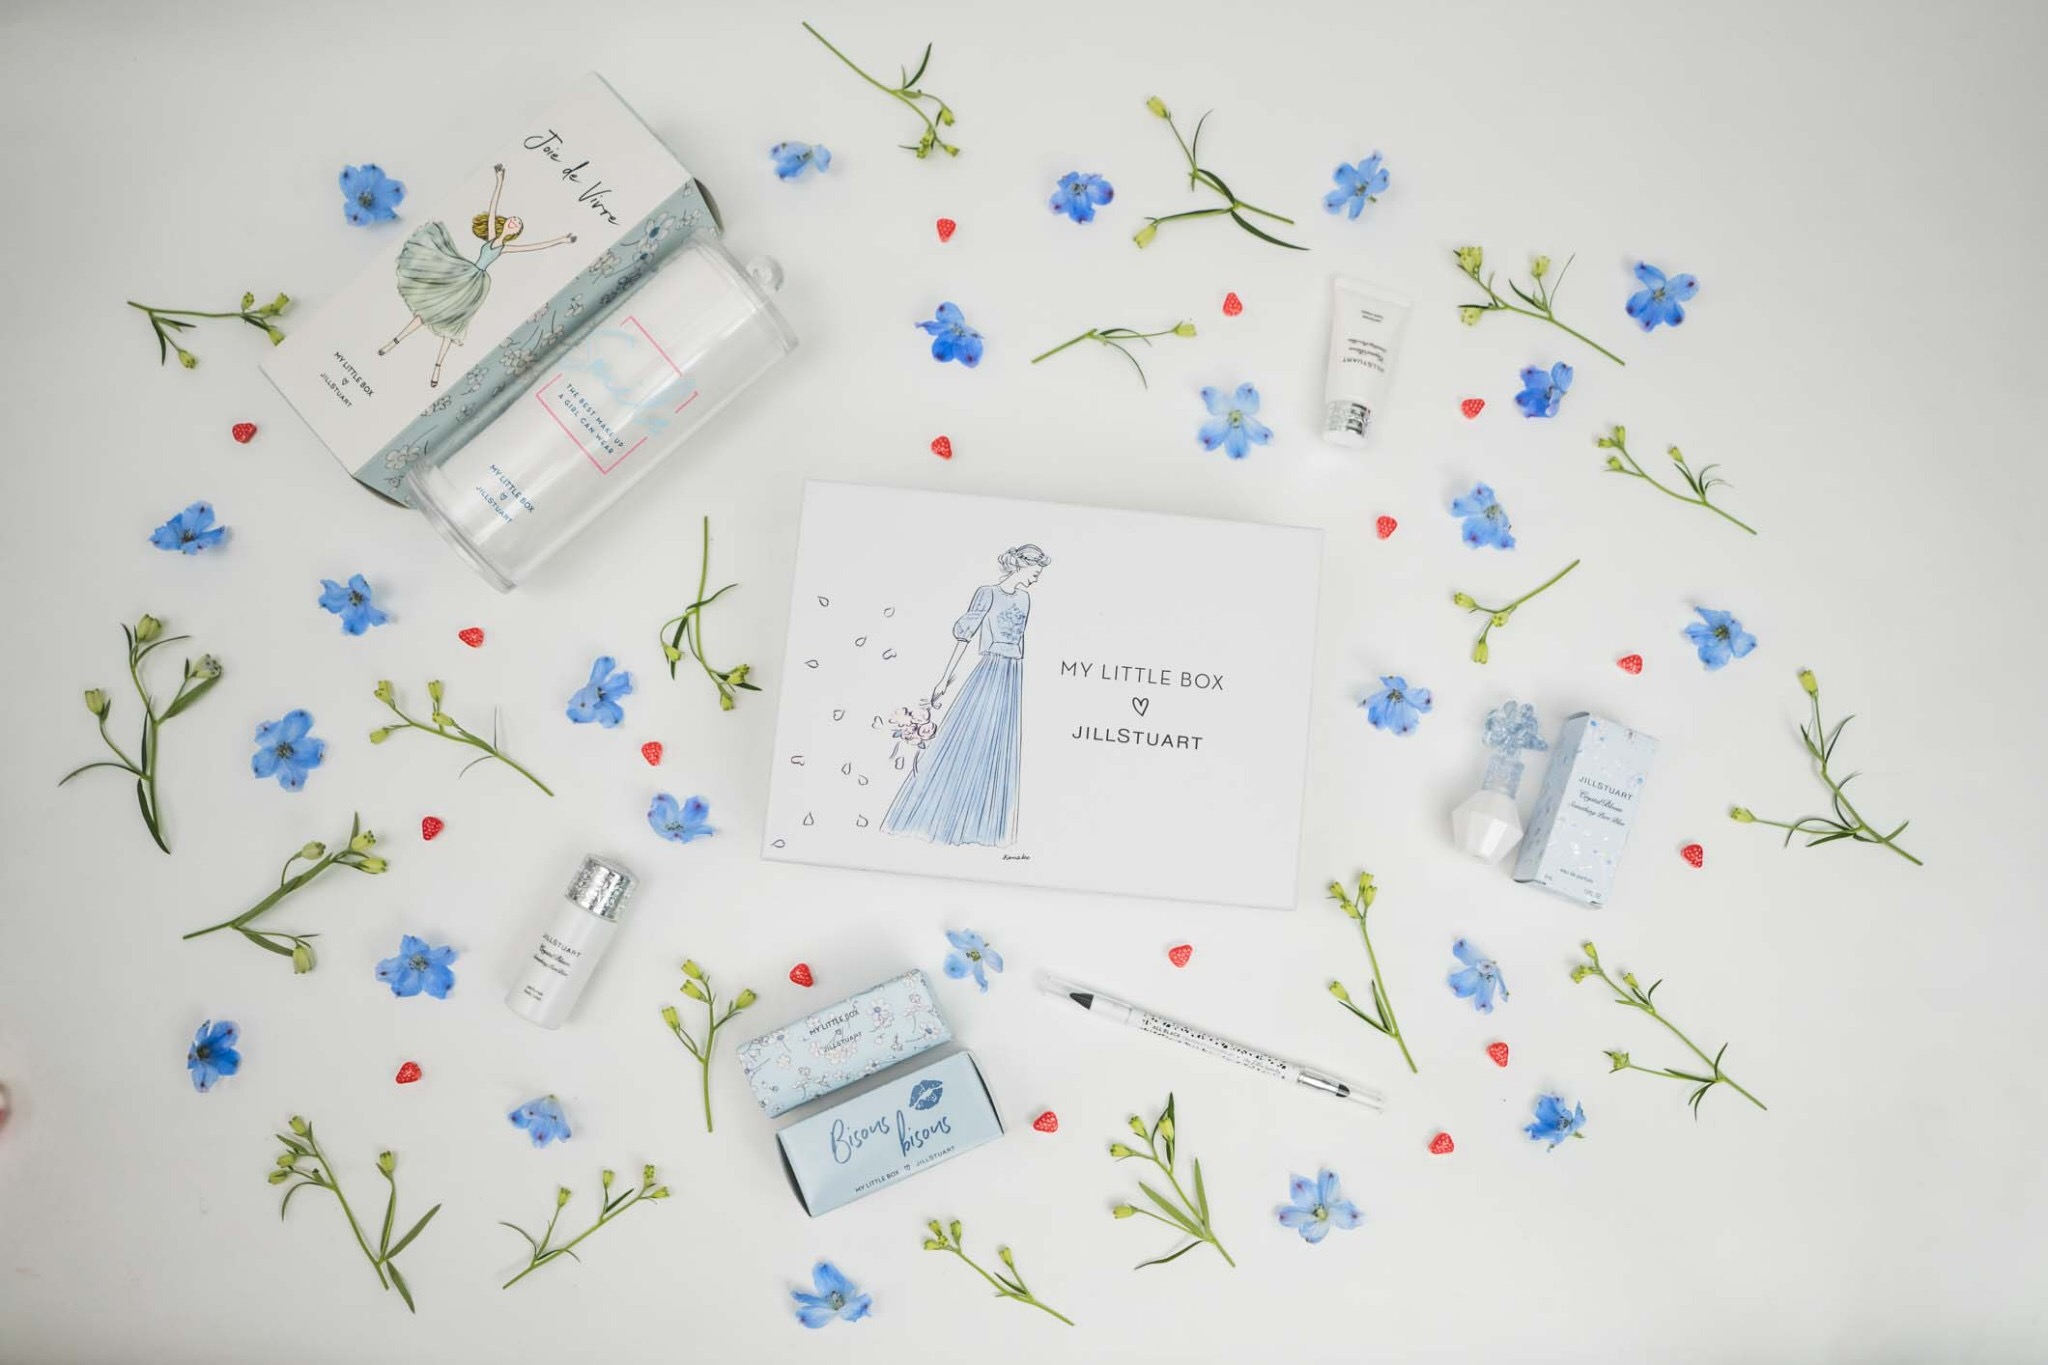 JILLSTUART x My Little Box 内容